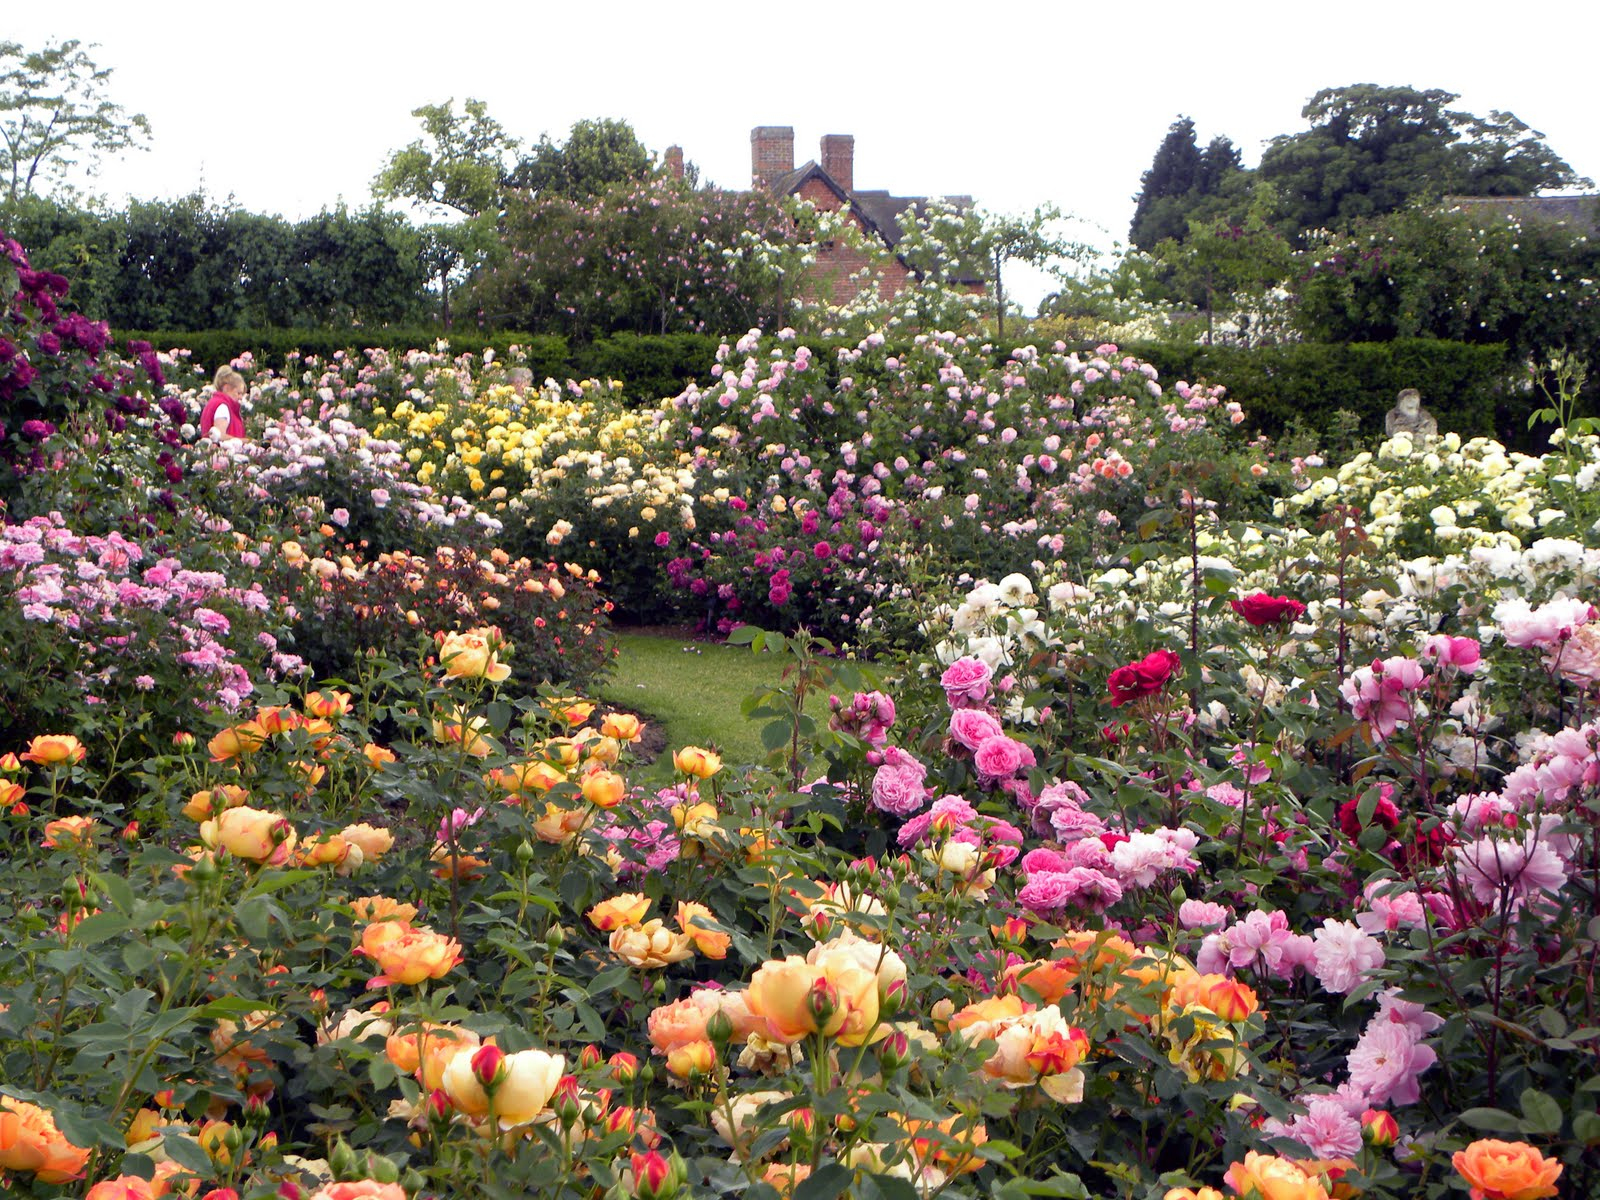 Garden Design Austin rose garden design service david austin roses ogrd pinterest see more ideas about rose garden design and david austin Who Could Possibly Have Enough Roses In A Garden To Make The Landscape